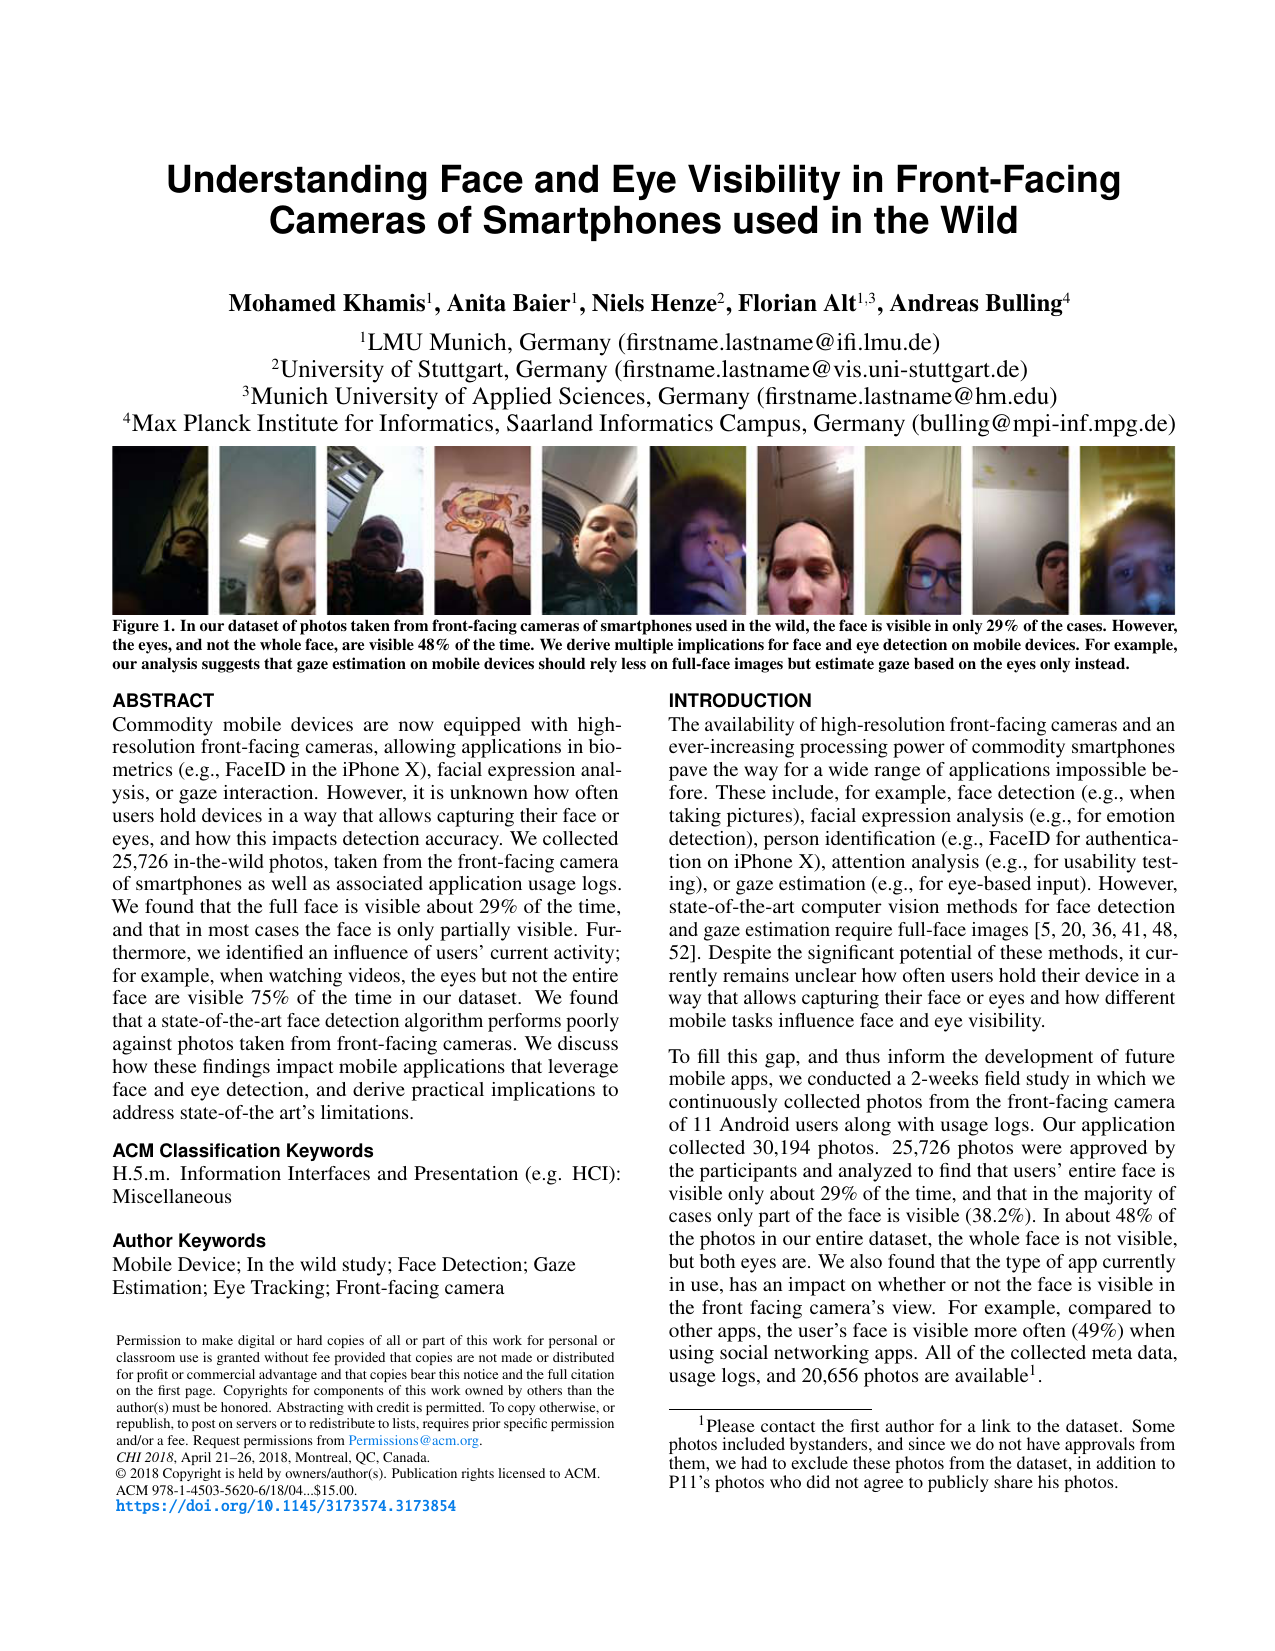 Understanding Face and Eye Visibility in Front-Facing Cameras of Smartphones used in the Wild